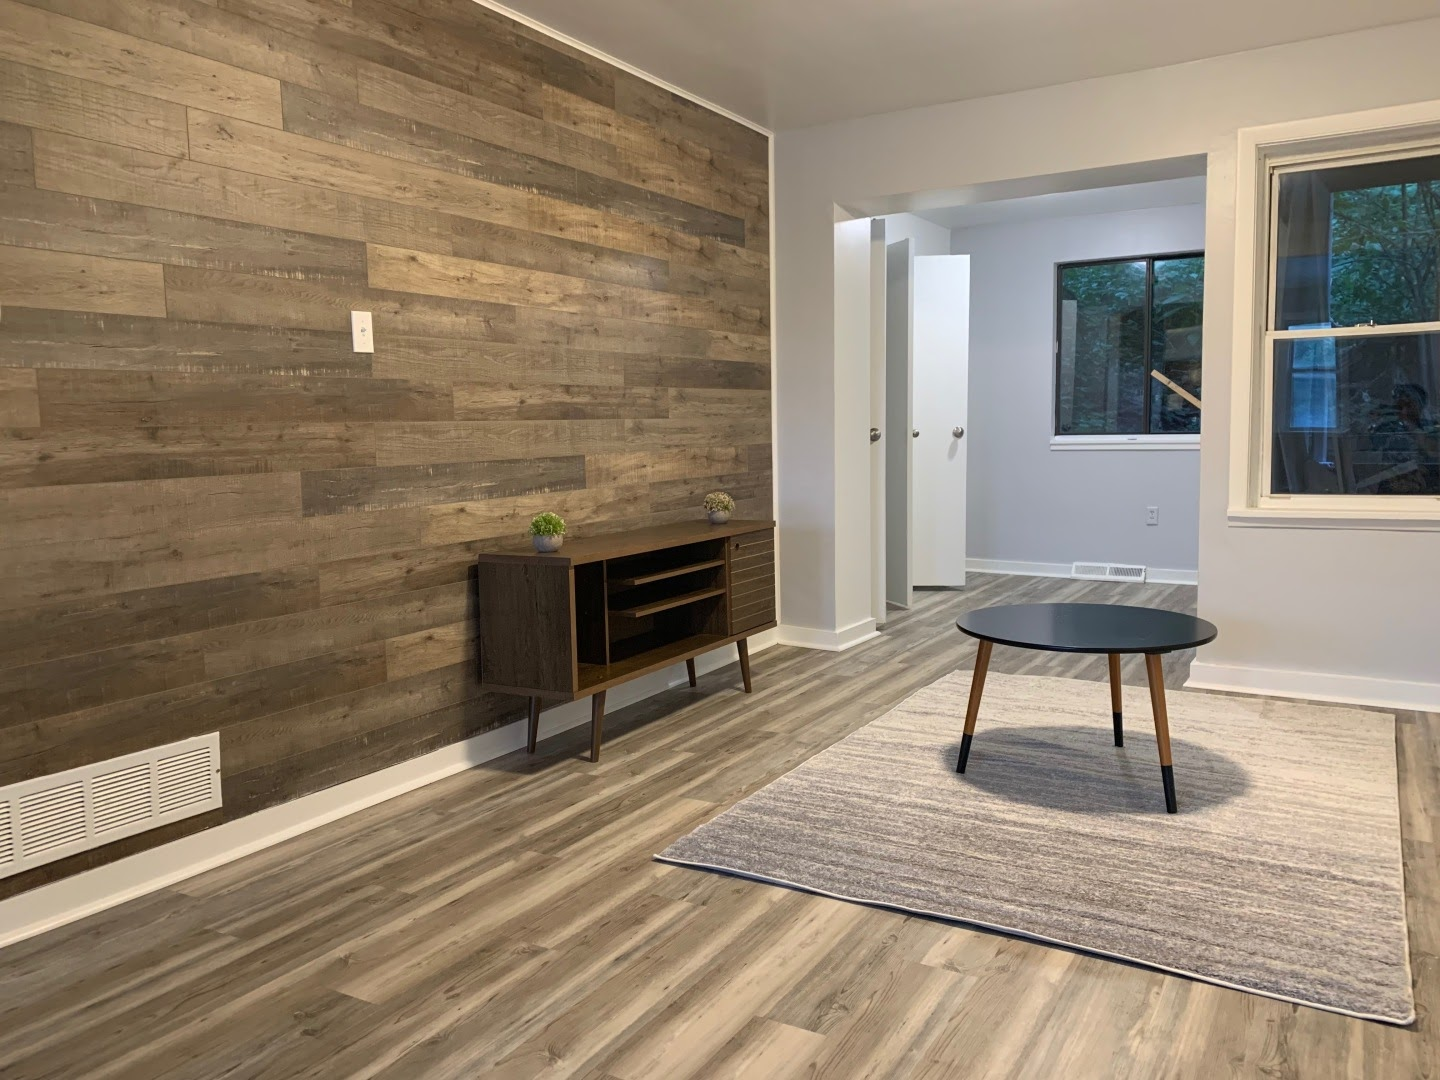 Tripalink with hardwood flooring and walls